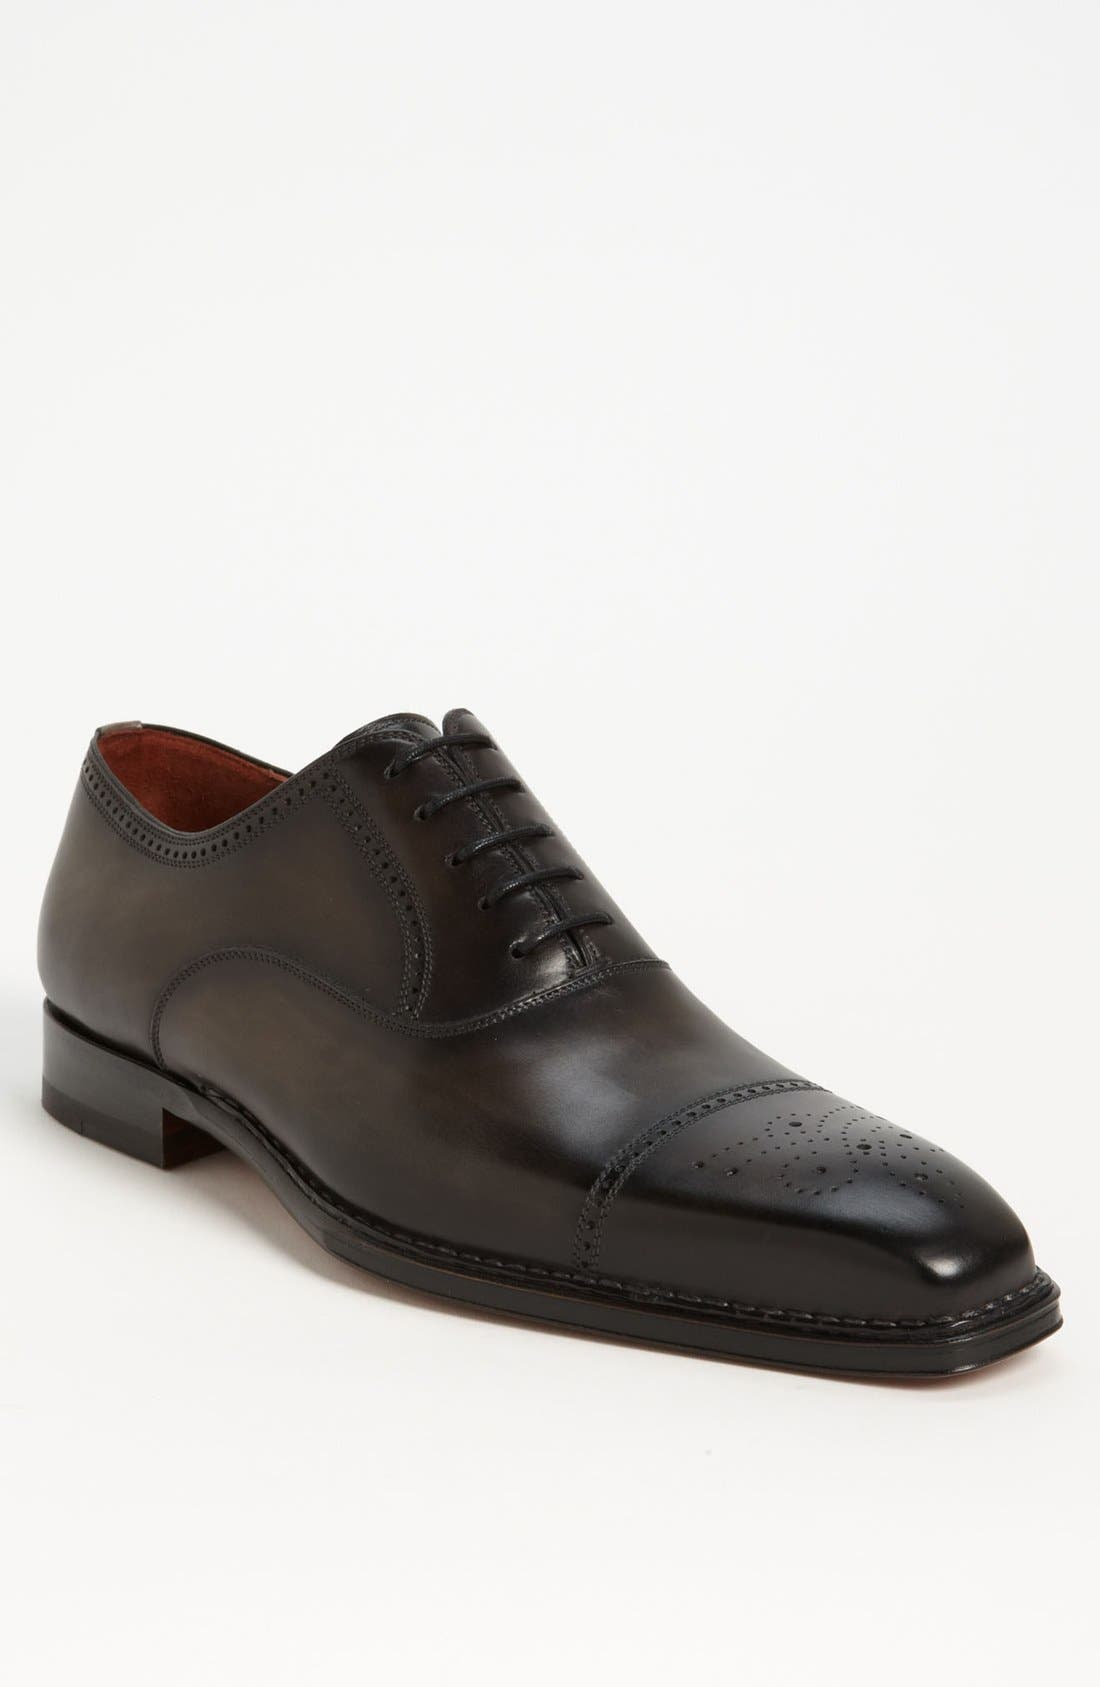 Main Image - Magnanni 'Seleccion - Valencia' Cap Toe Oxford